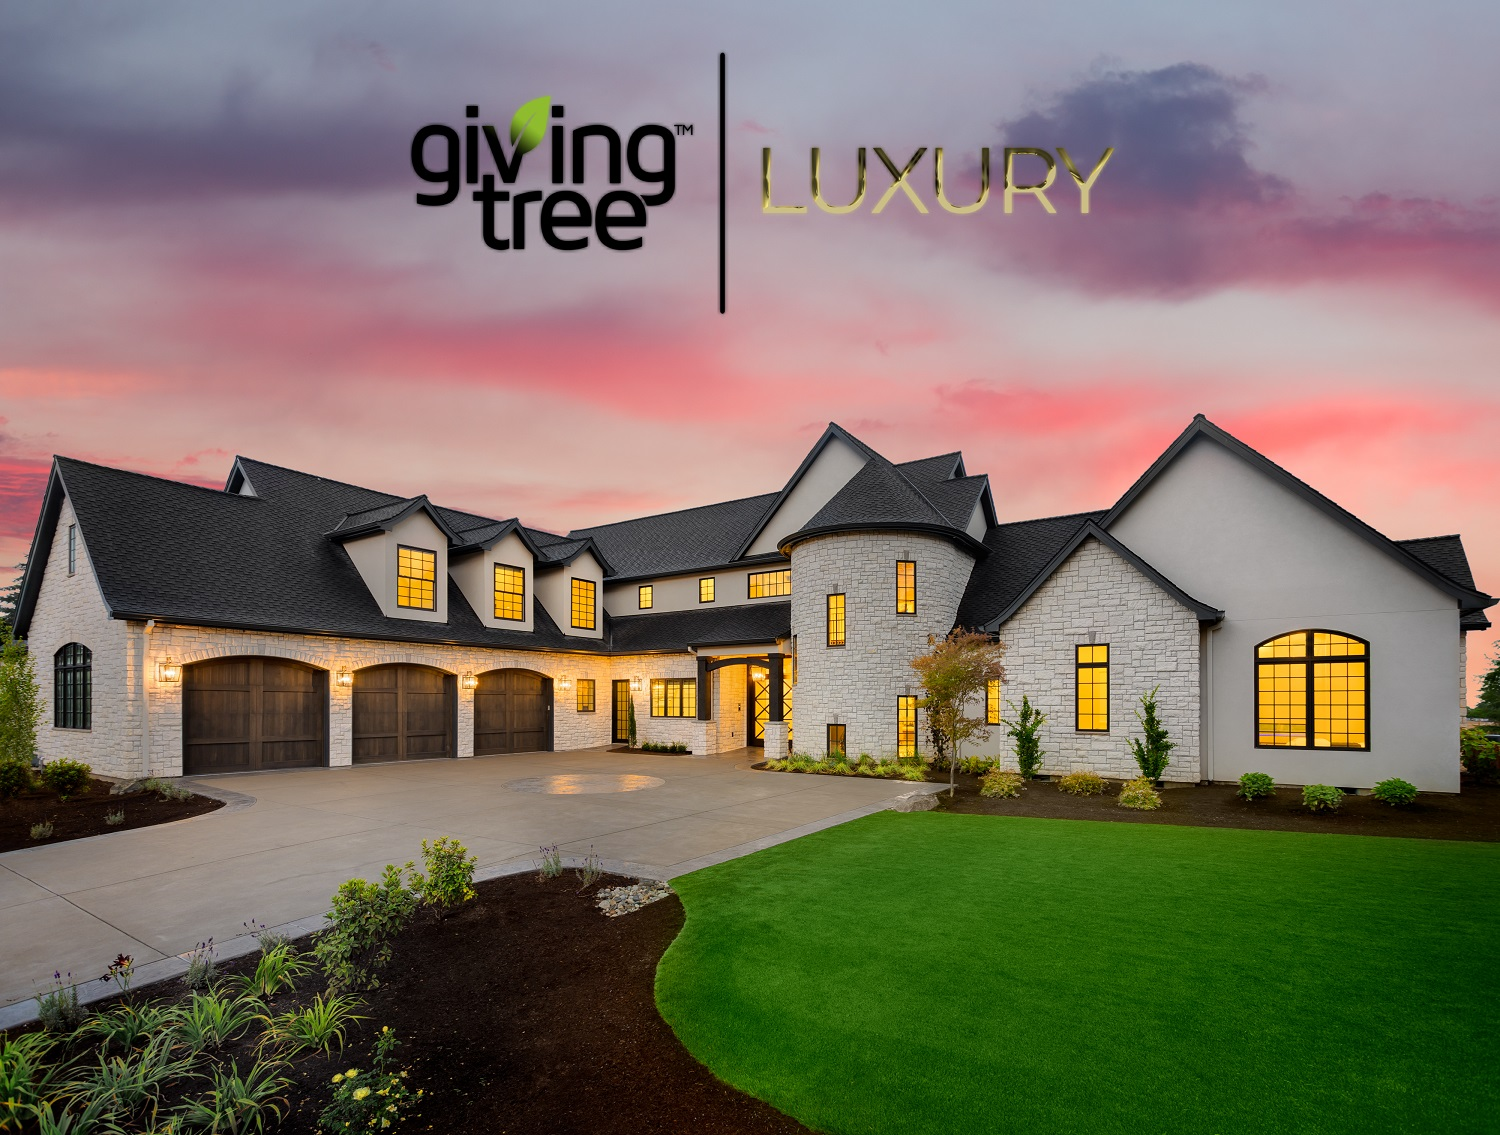 luxury homes for sale in Charlotte, NC